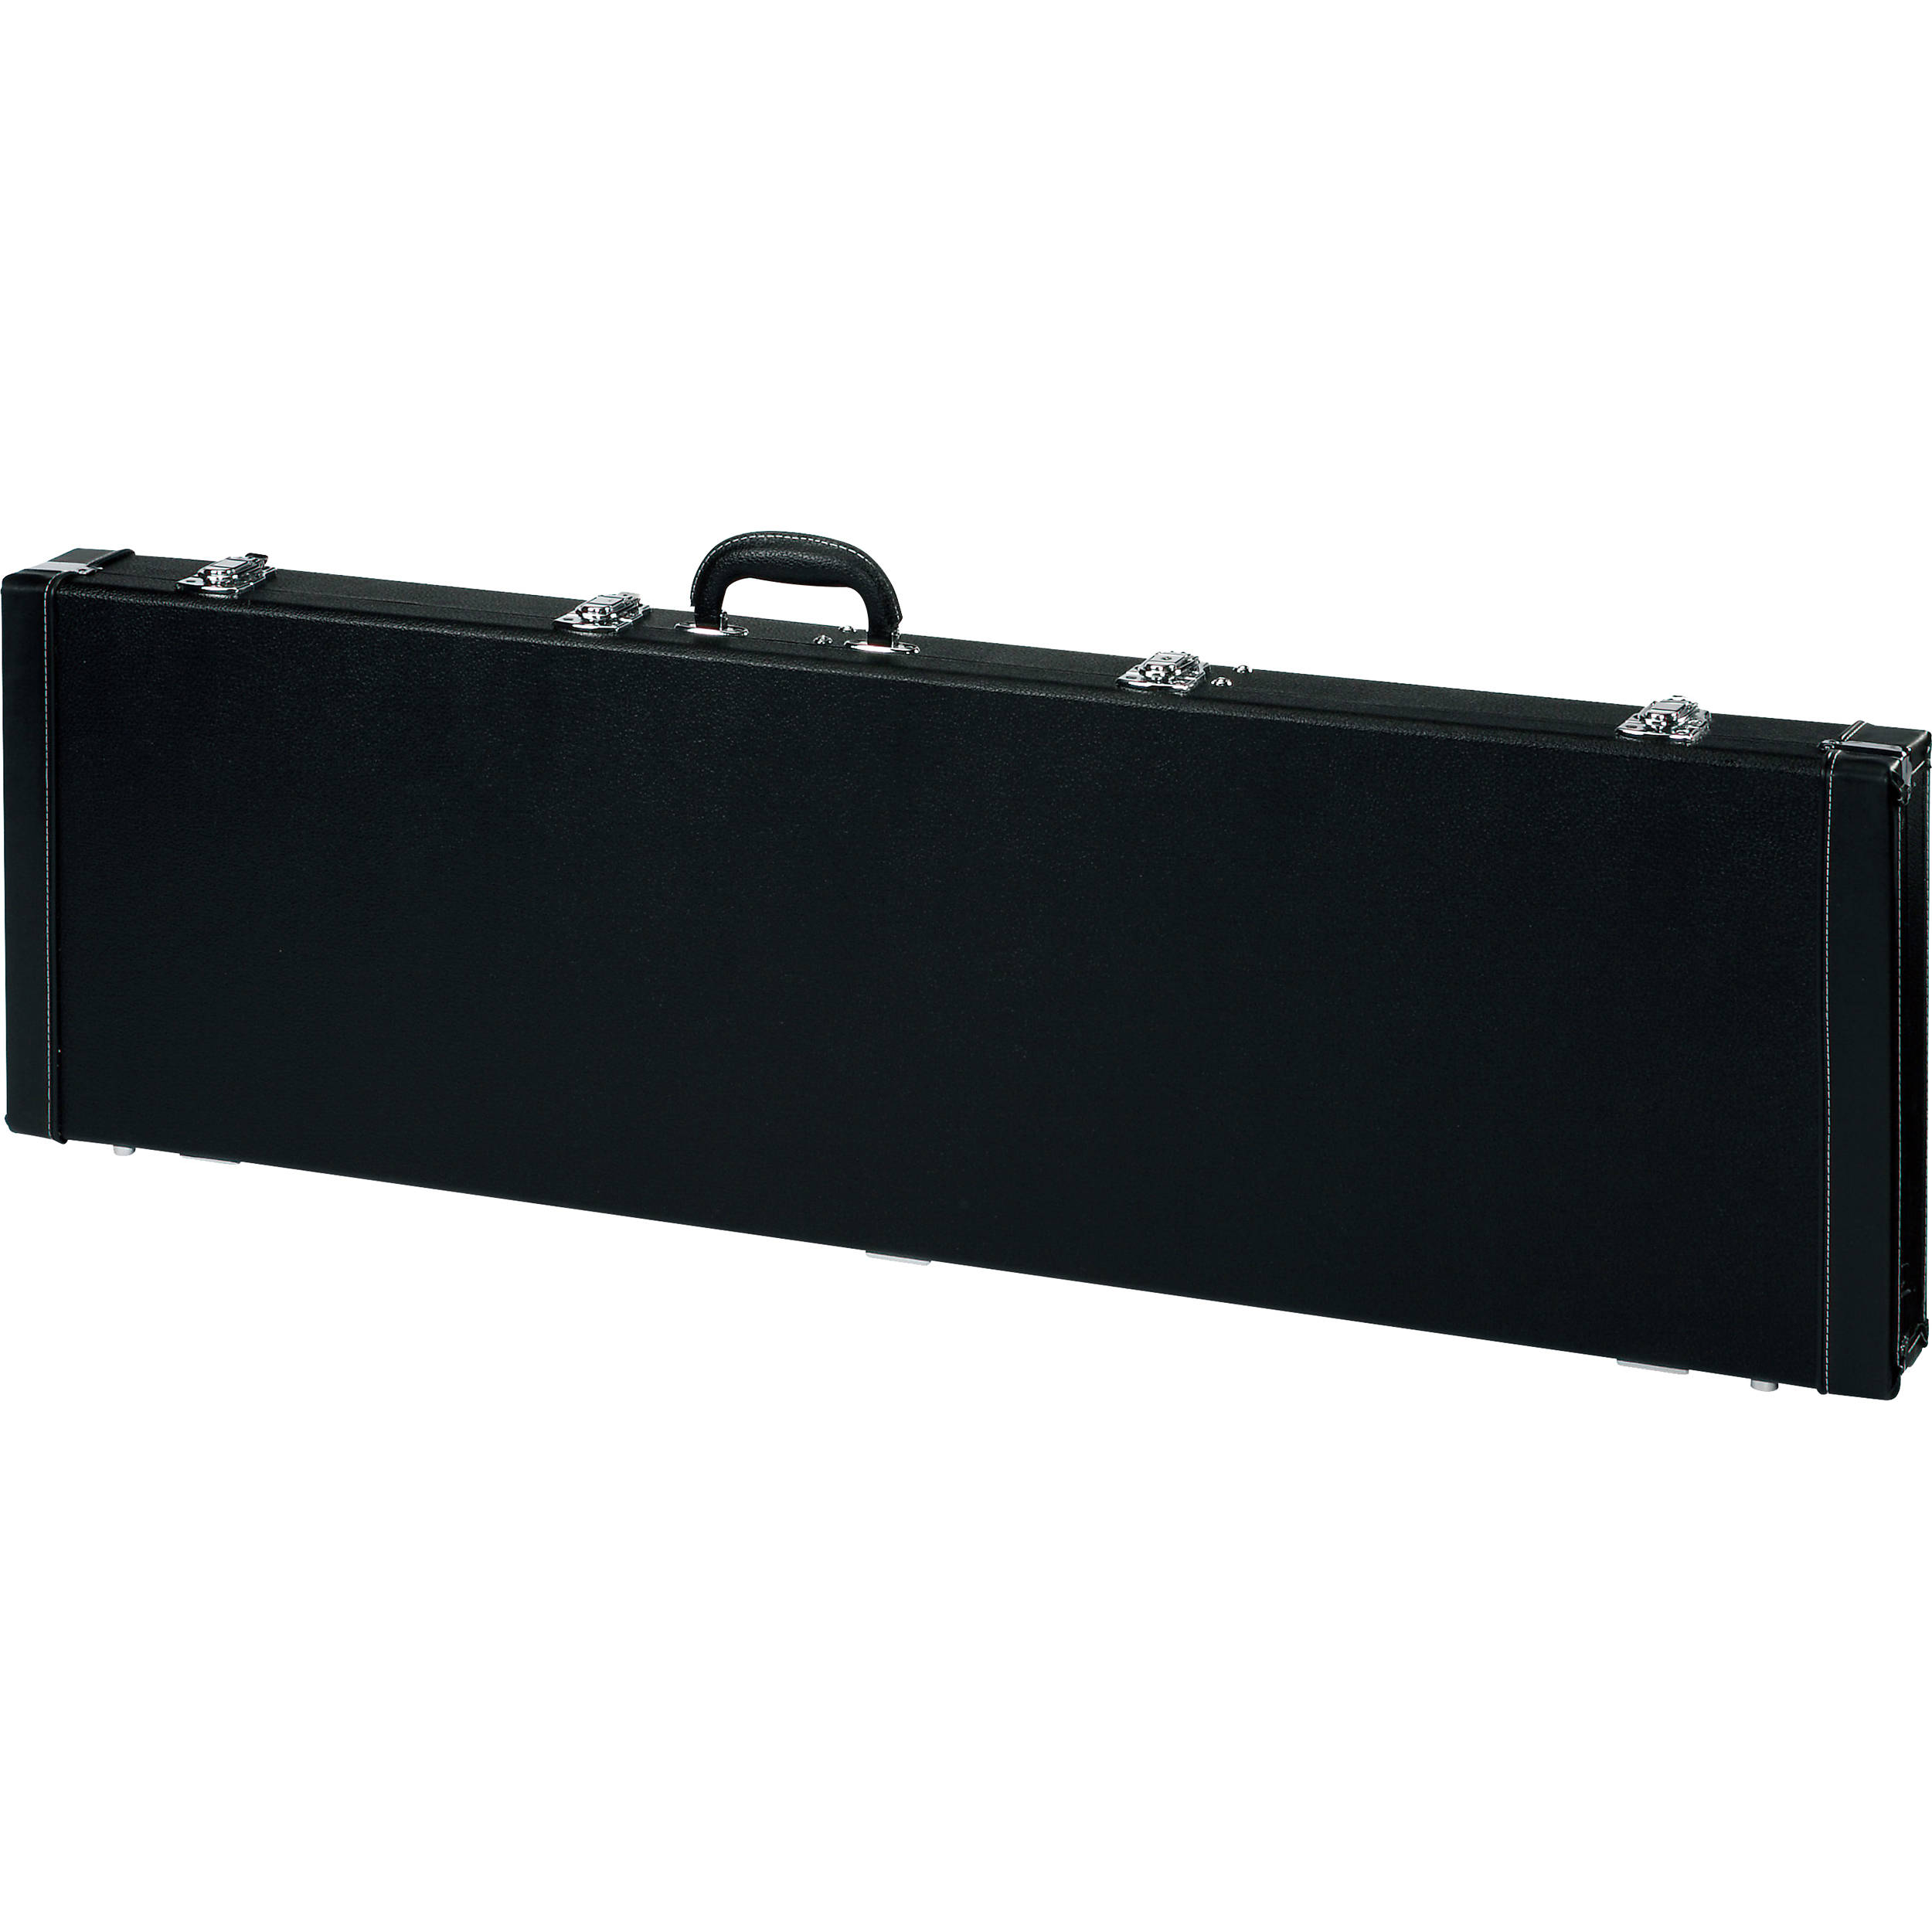 ibanez wb200c hardshell case for select bass guitars wb200c b h. Black Bedroom Furniture Sets. Home Design Ideas